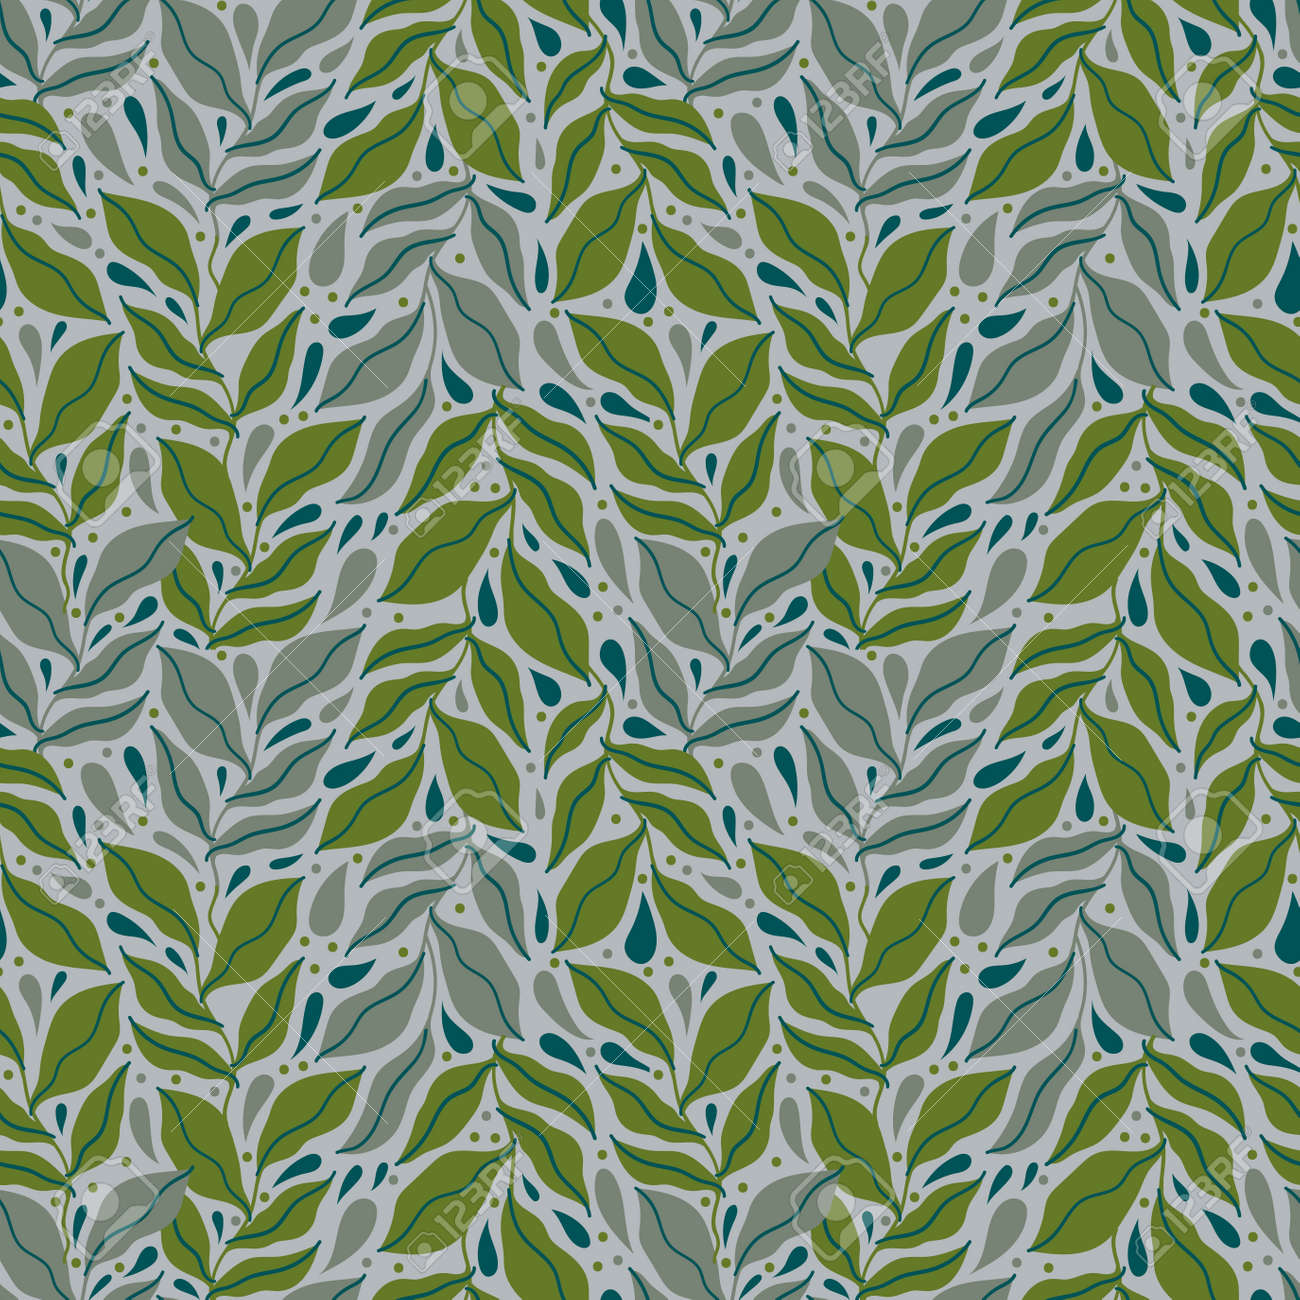 Seamless pattern leaves plant .Floral motif nature abstract print.Modern summer background. - 169556229